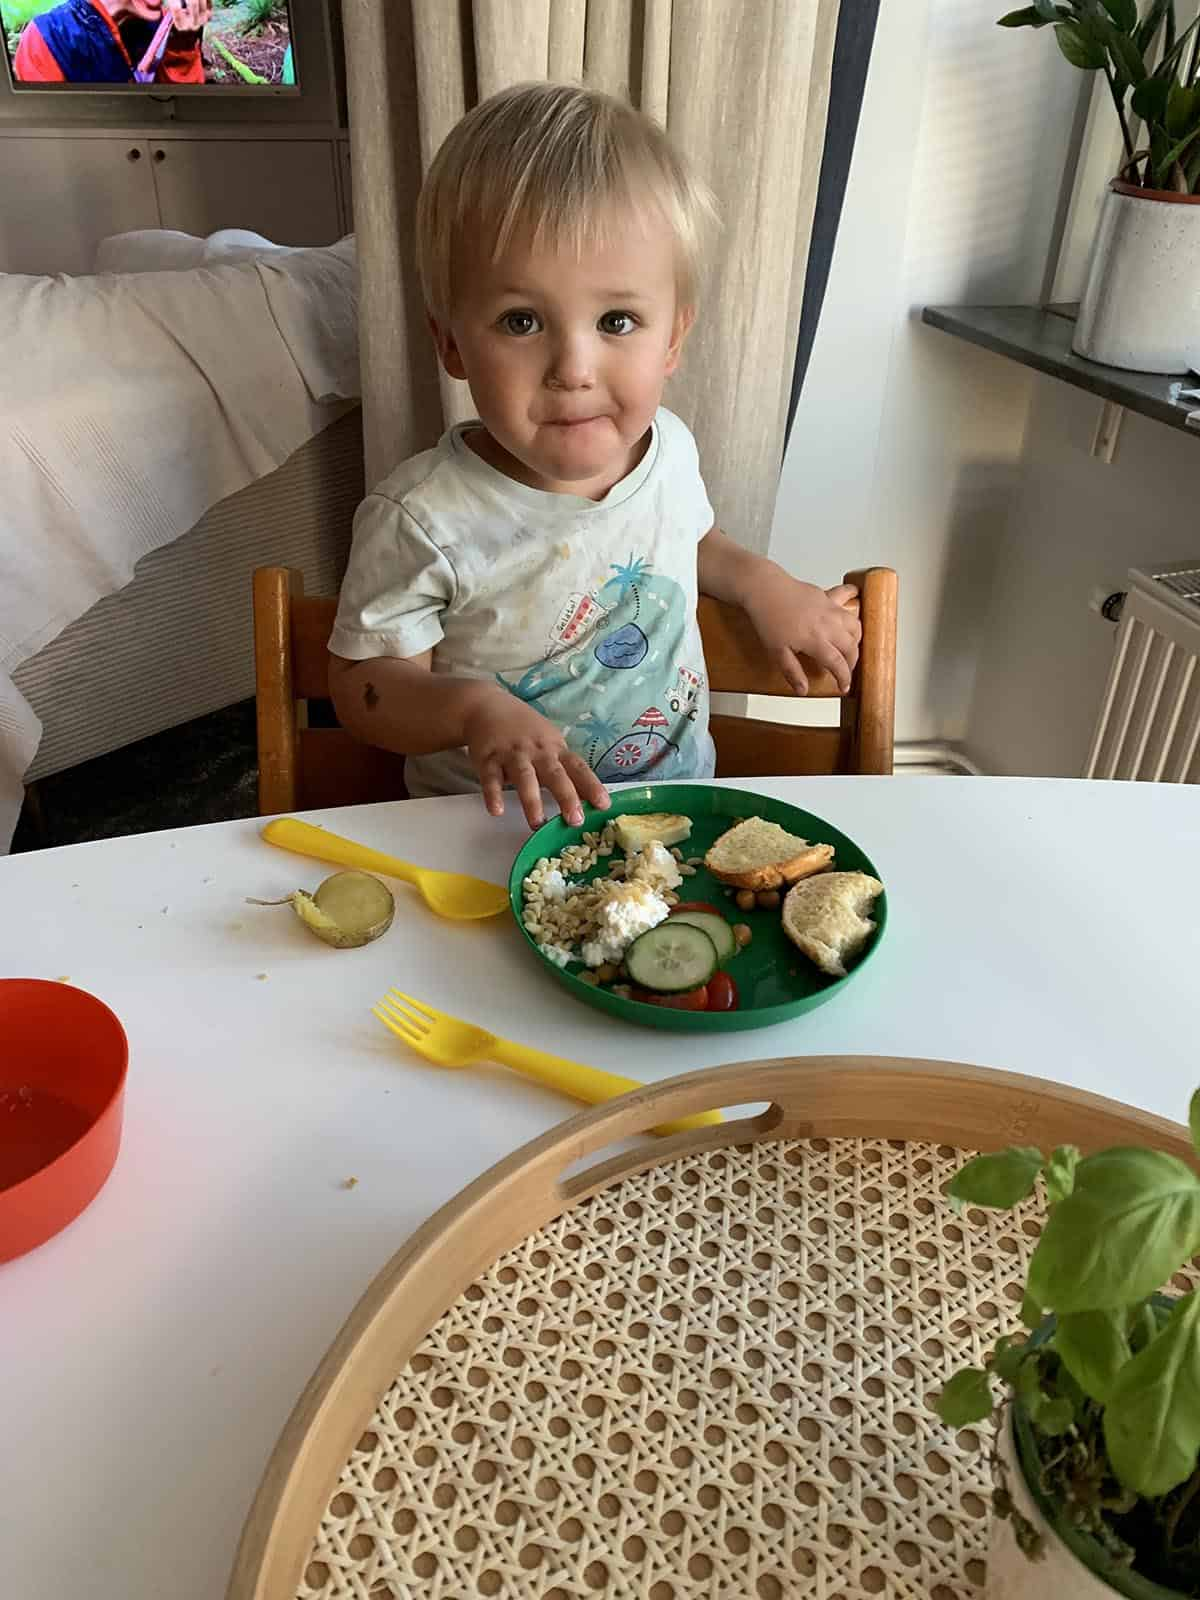 A small boy sitting at a table with a plate of food